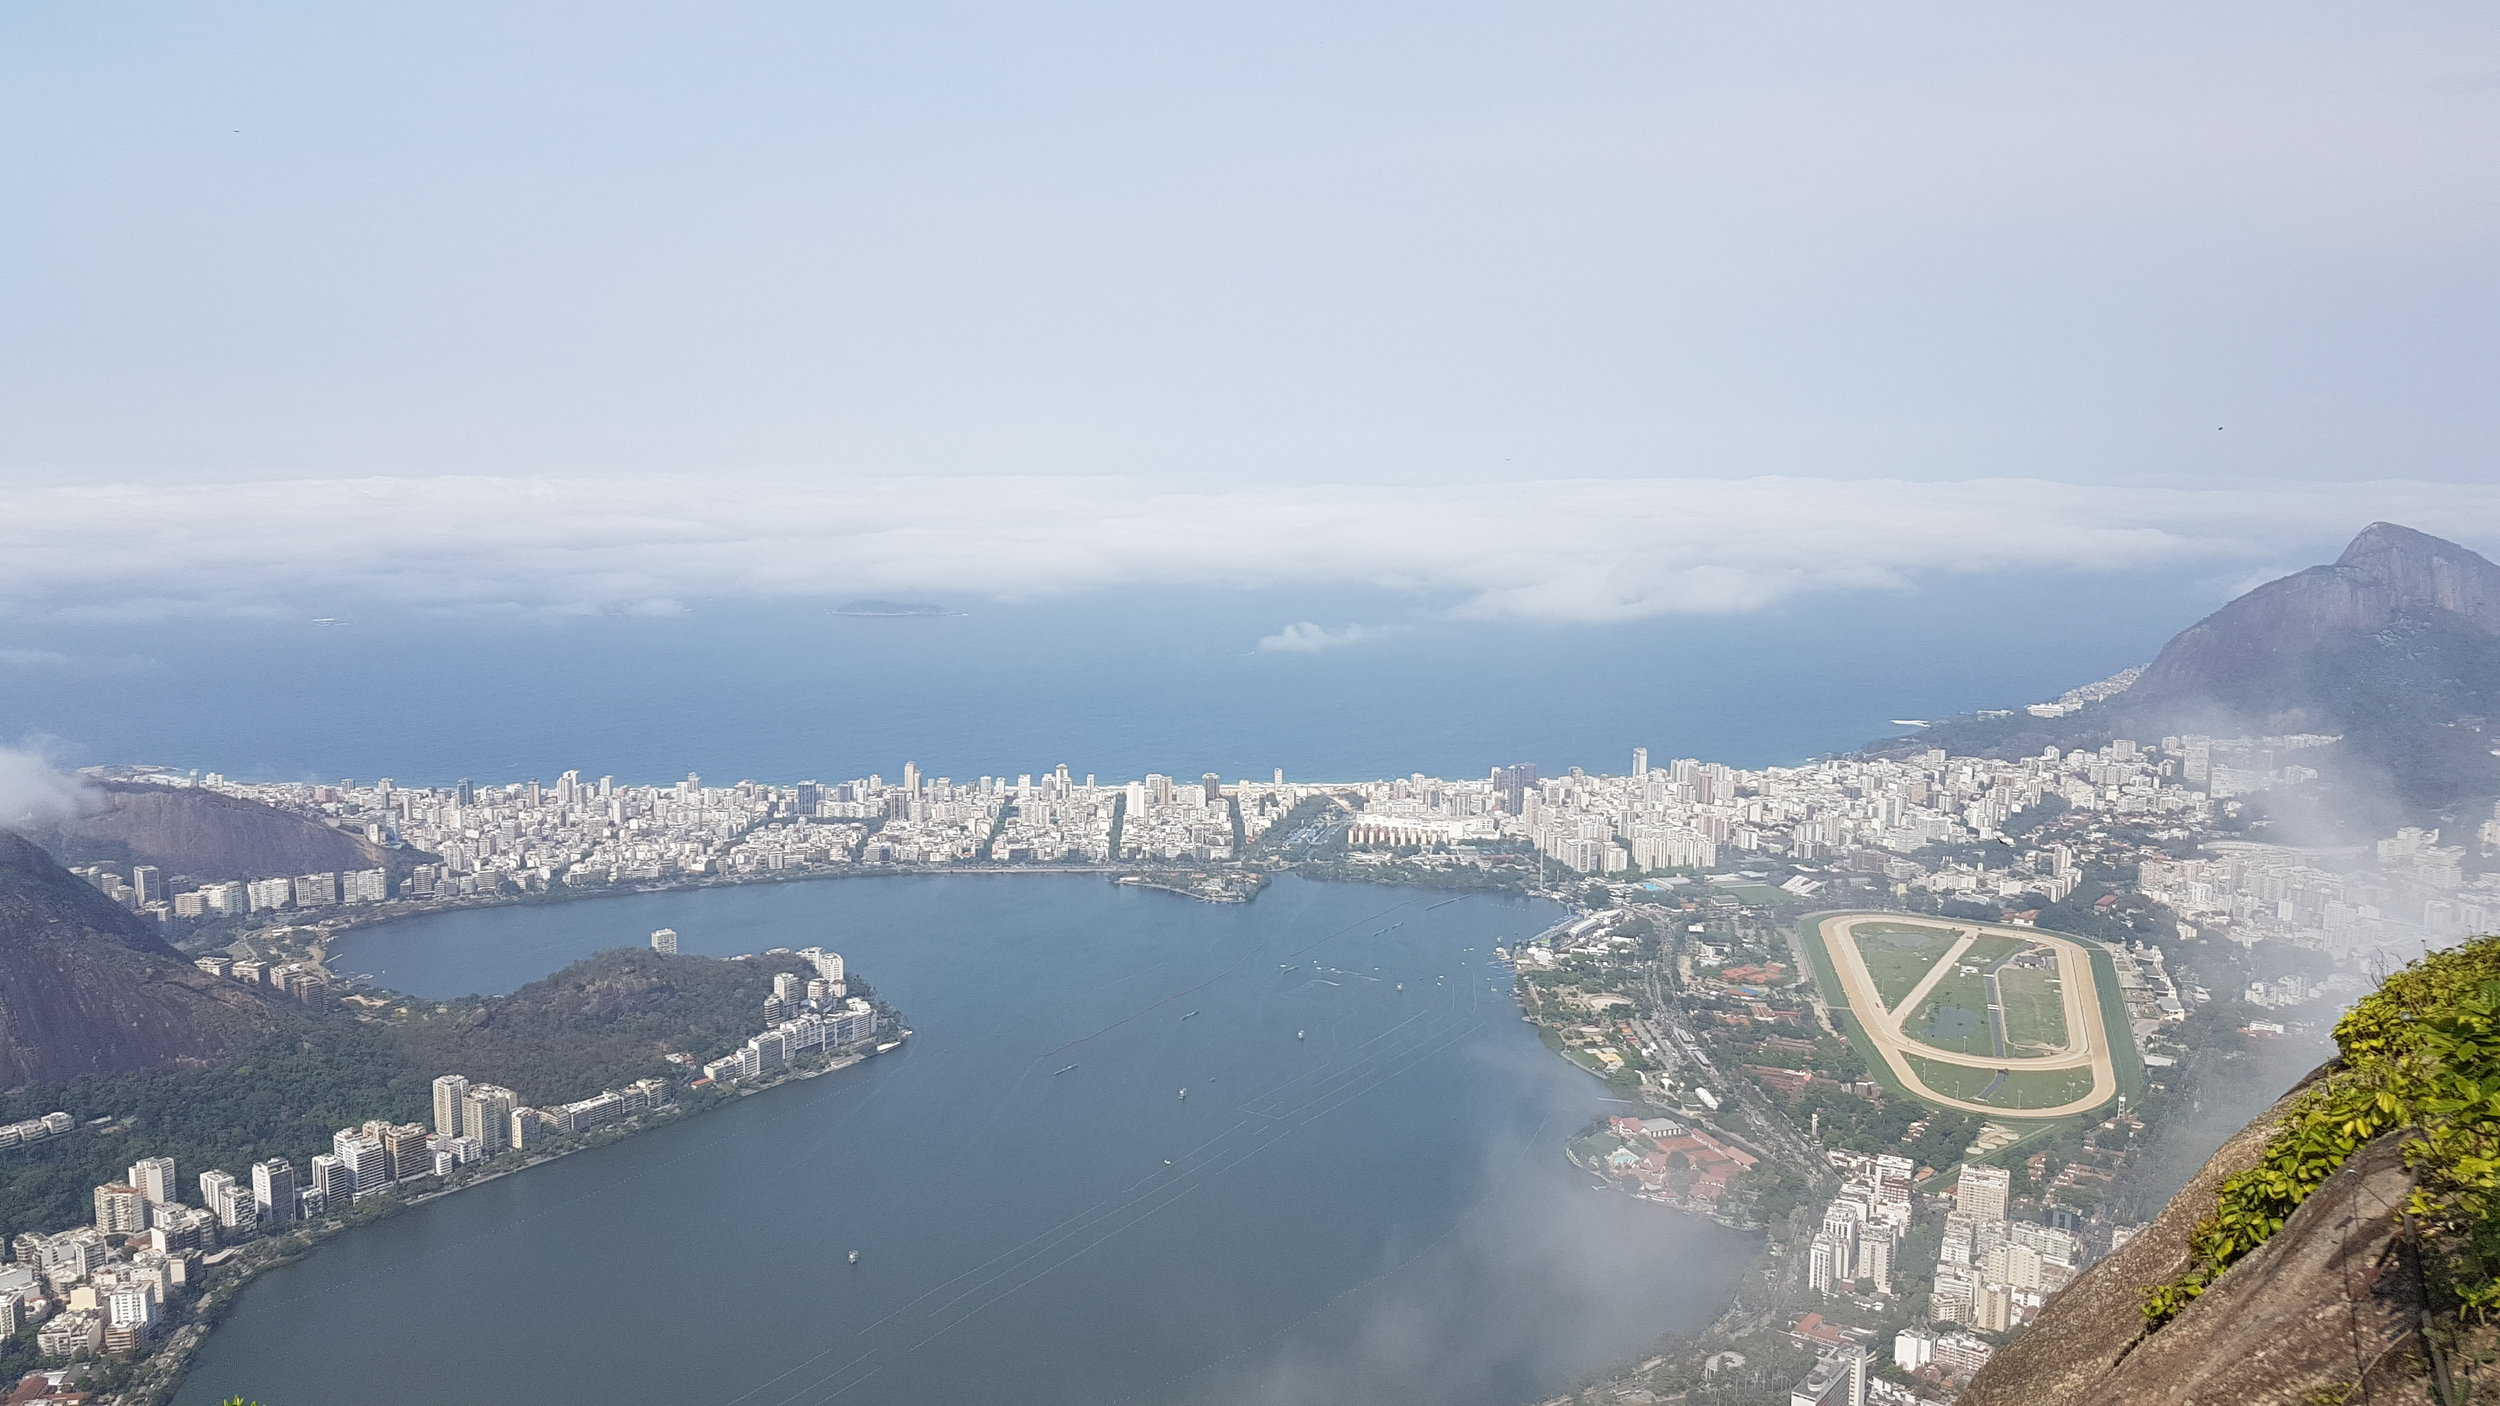 View at Christ the Redeemer in Brazil